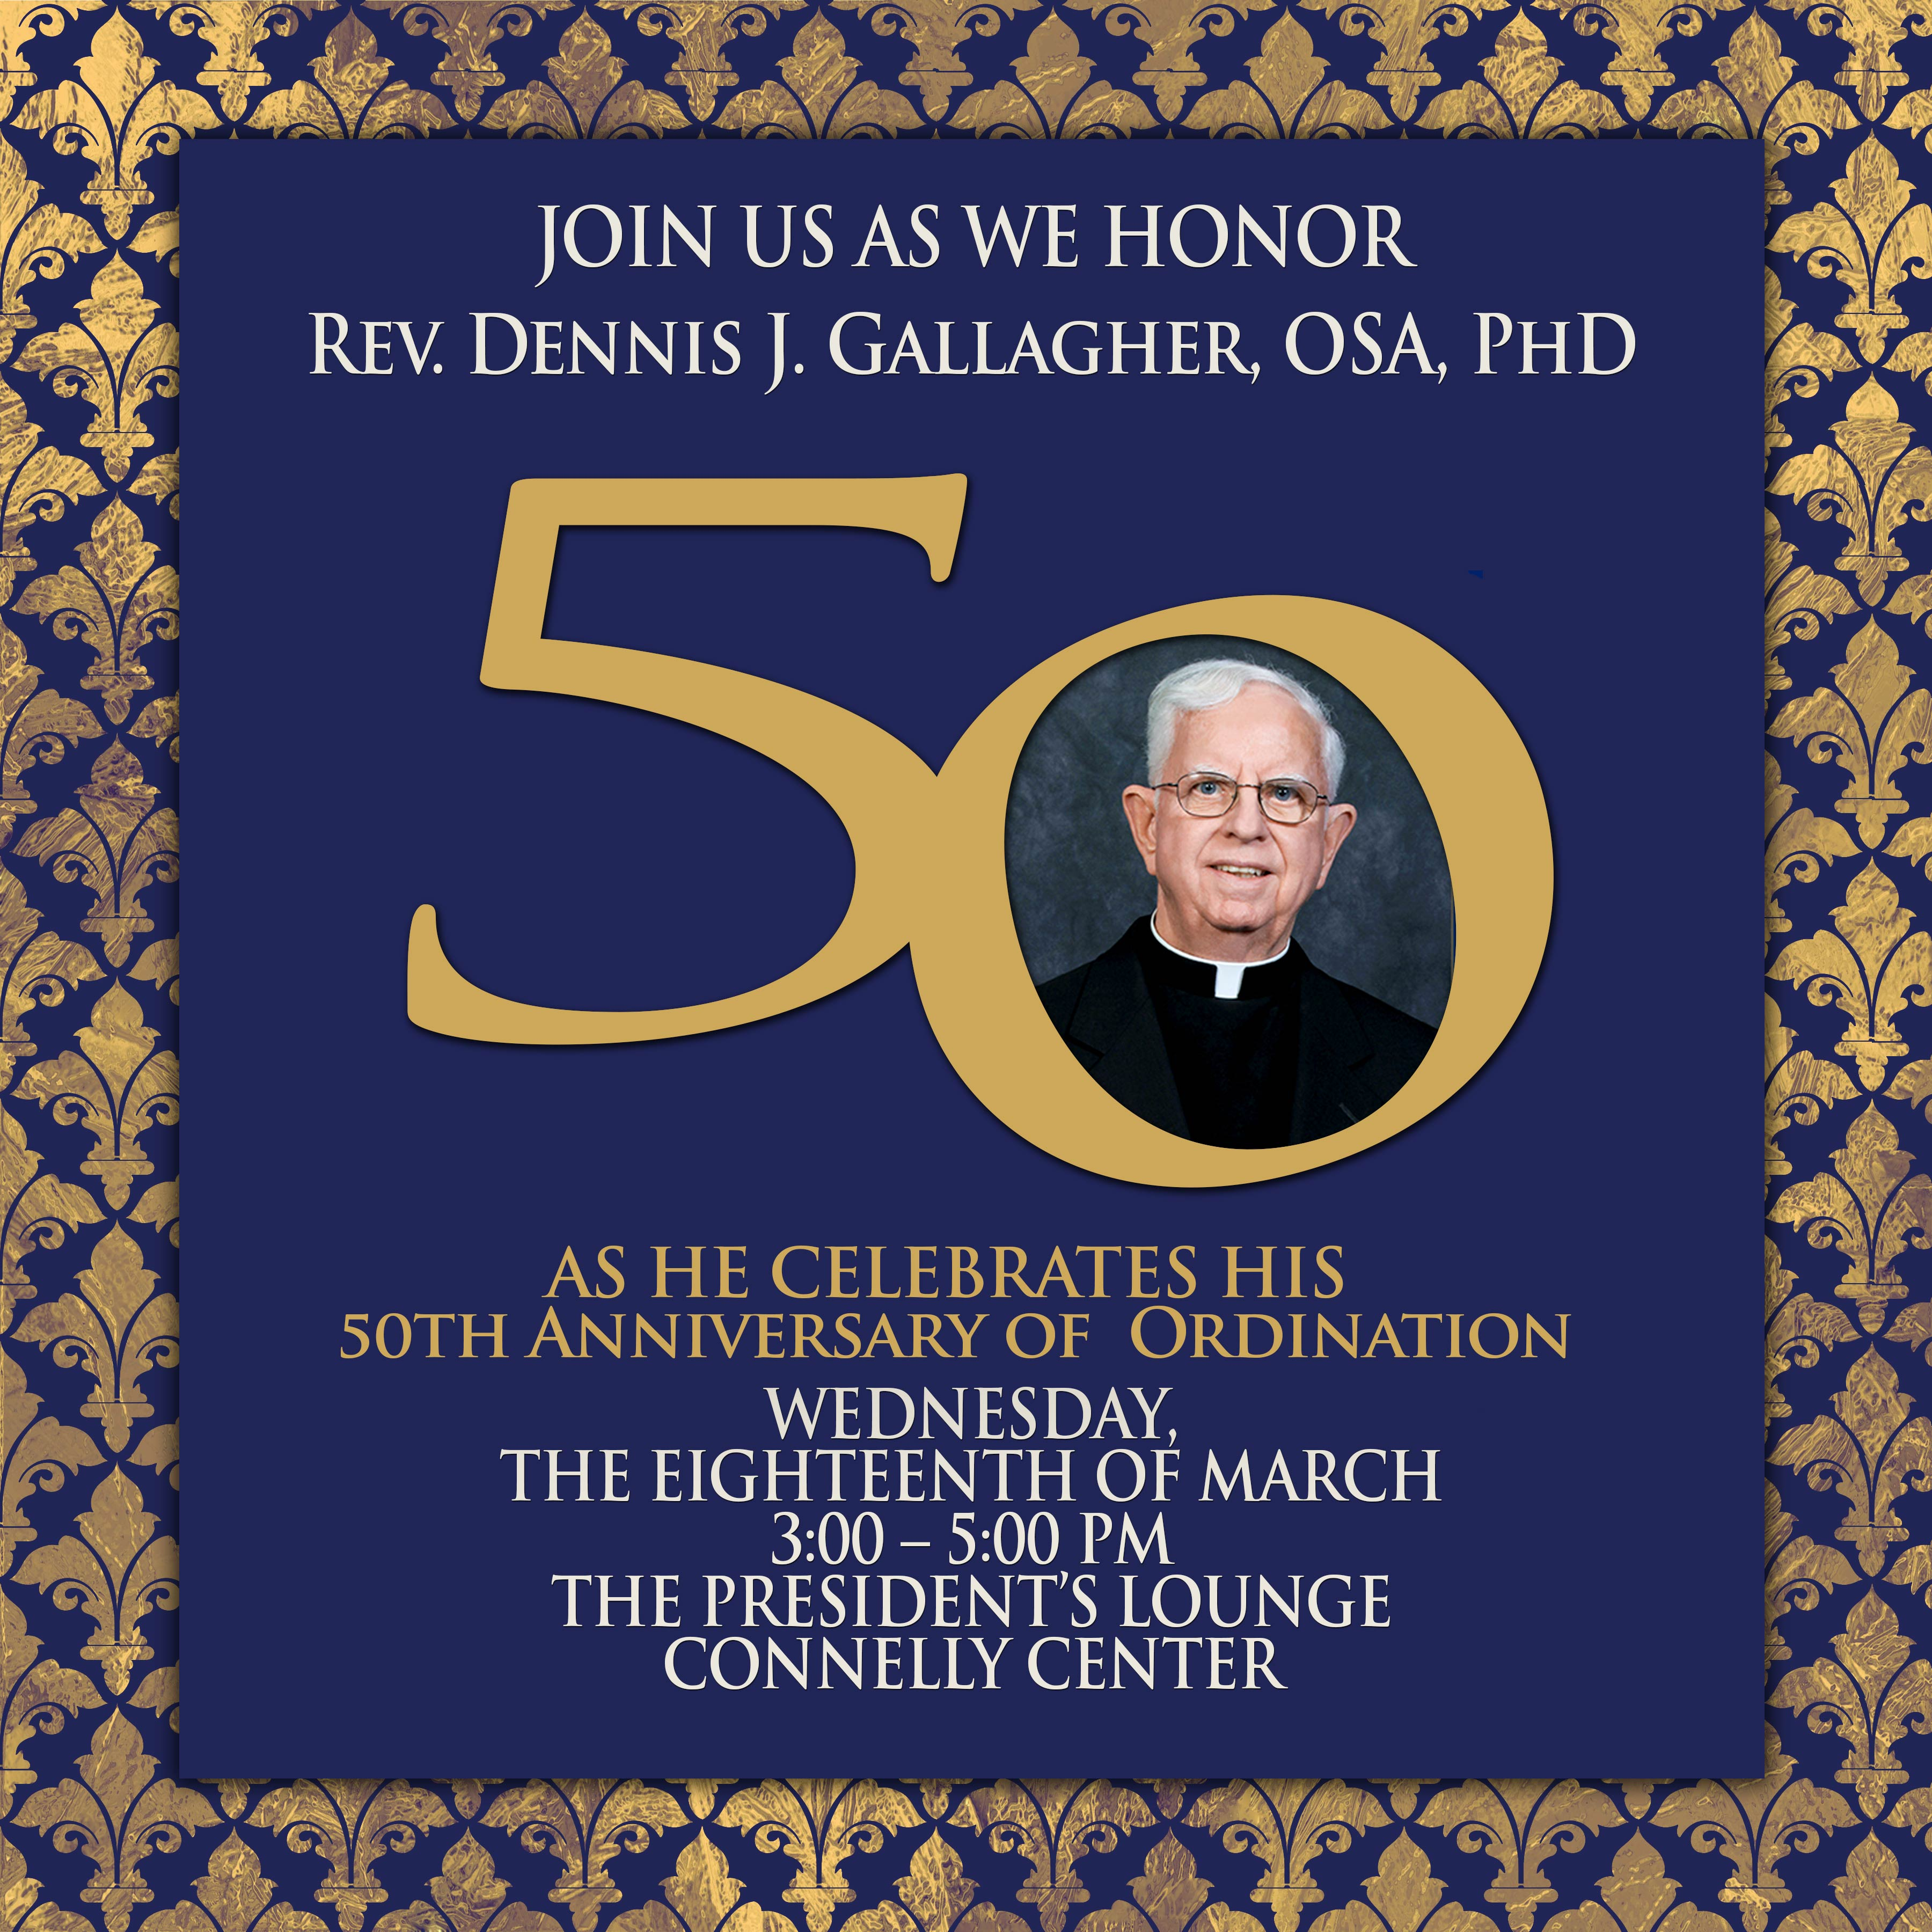 Falvey memorial library villanova university you are invited to you are invited to a golden anniversary celebration to honor rev dennis j gallagher osa phd stopboris Images